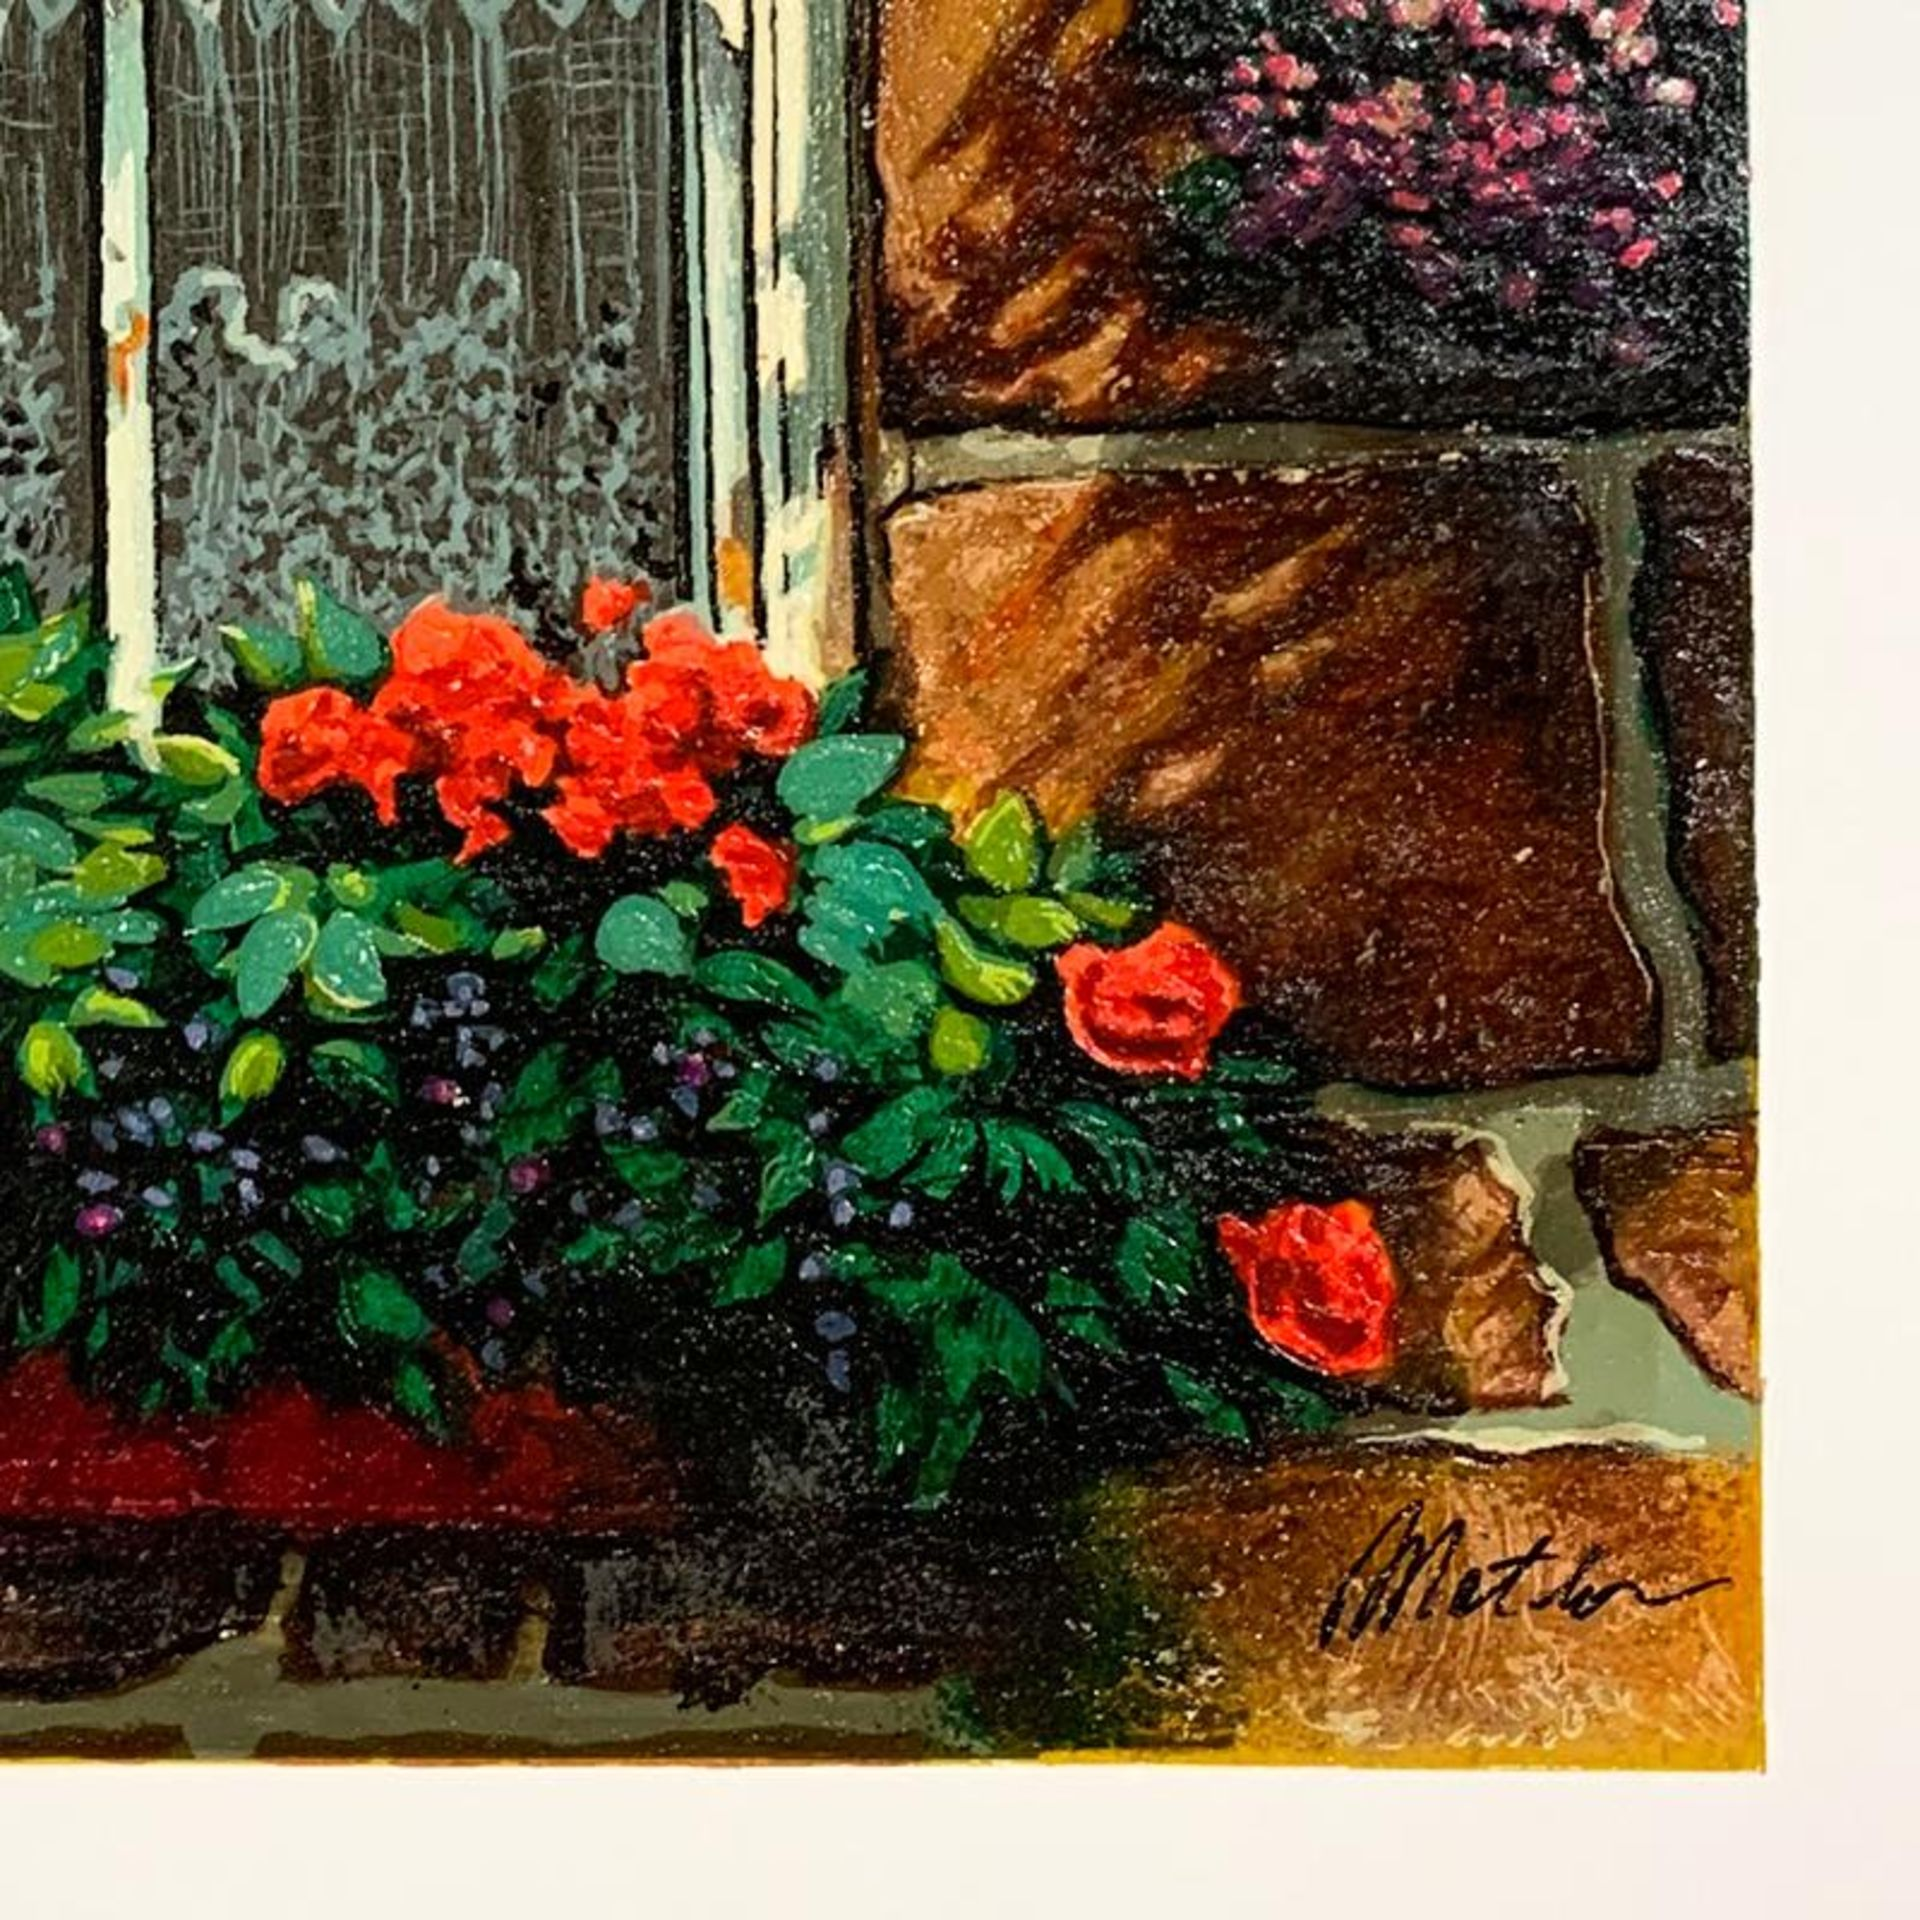 """Anatoly Metlan, """"Beyond Our Window"""" Hand Signed Limited Edition Serigraph on Pap - Image 2 of 2"""